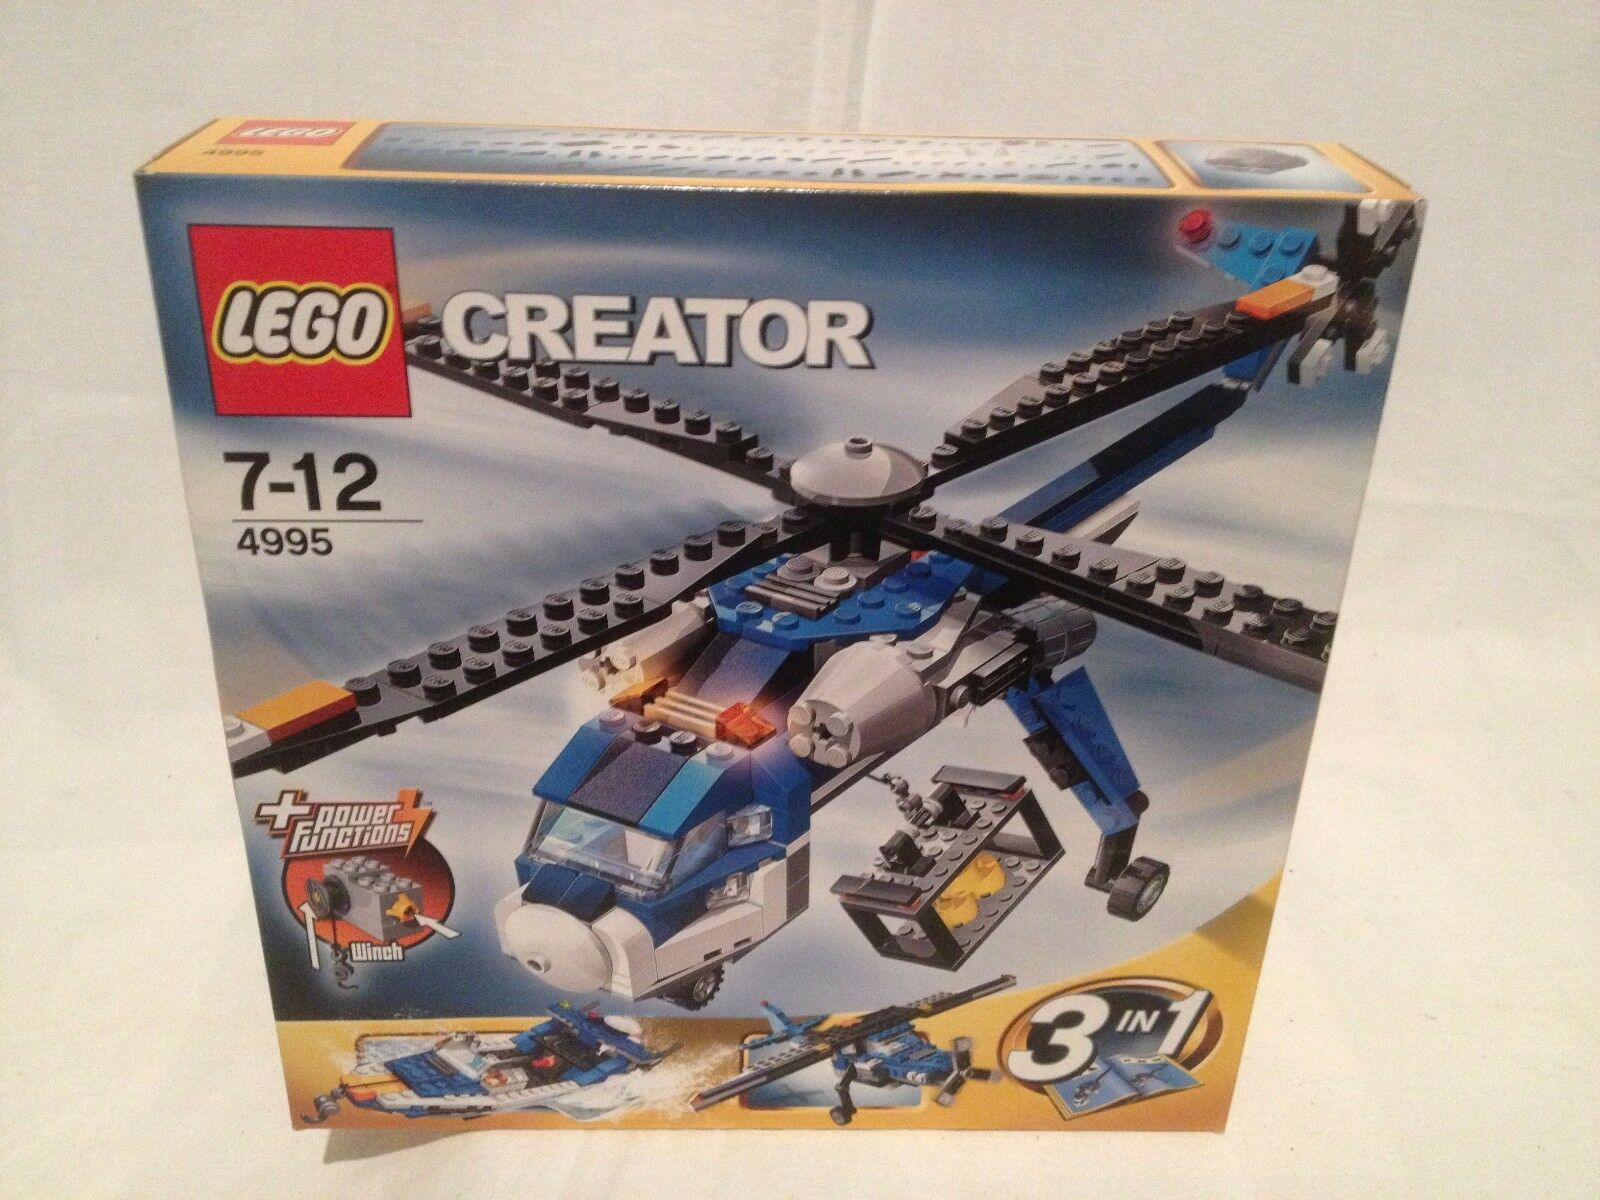 Lego Créator 4995 helicoptere cargo NEUF 1 édition